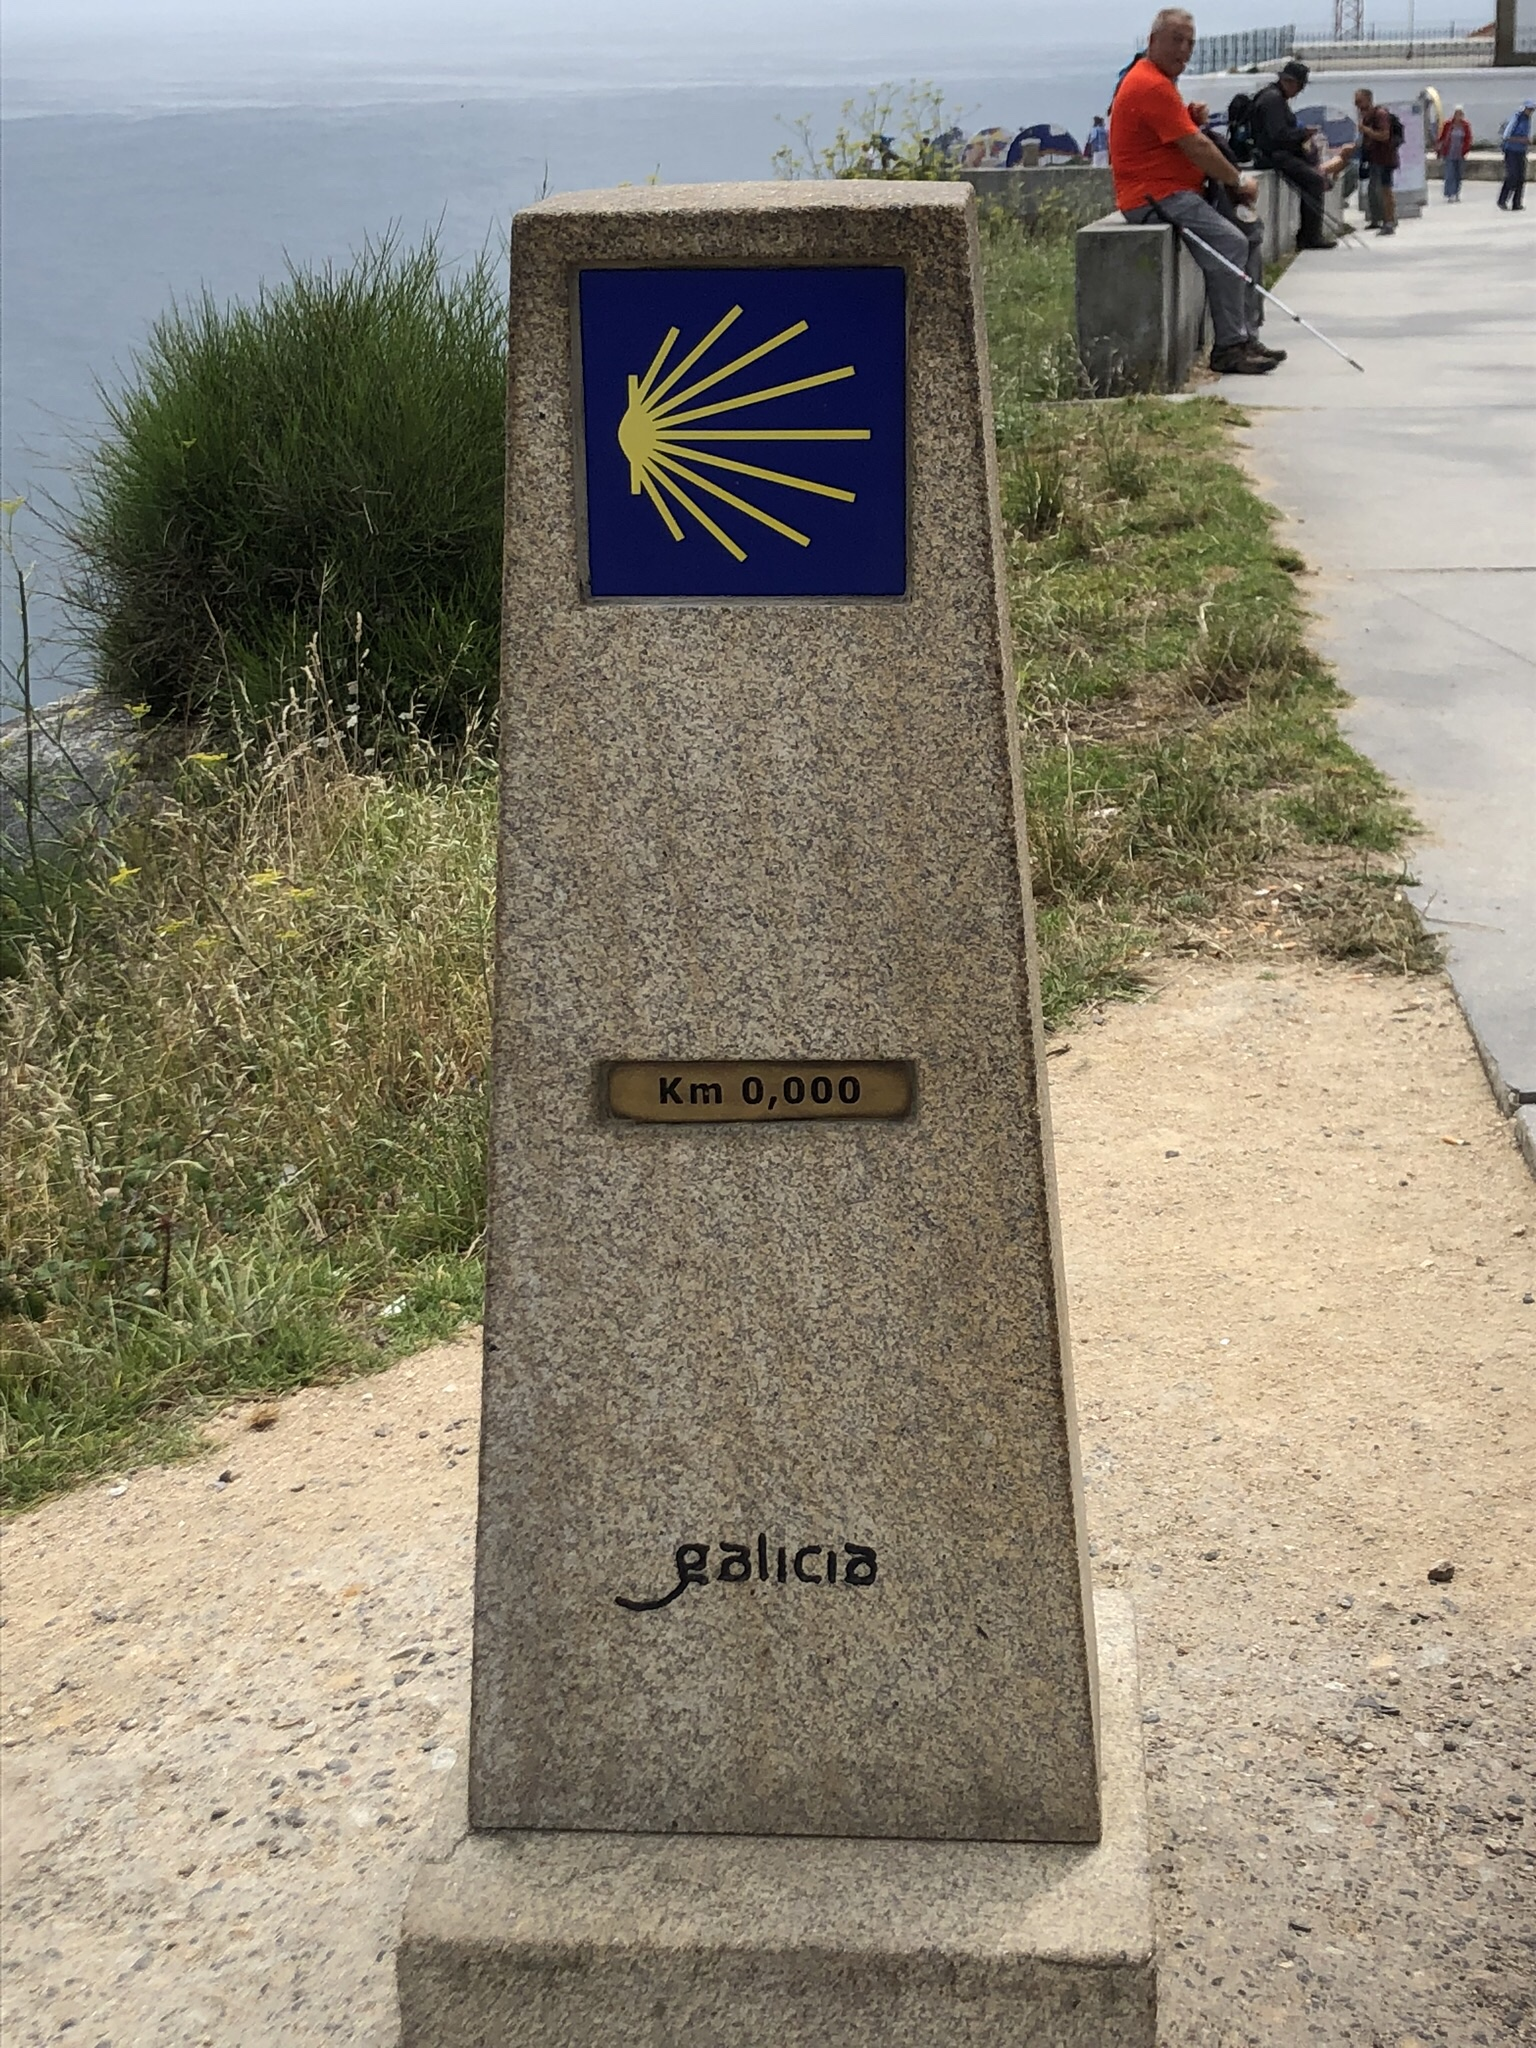 This sign post marks the end of the Pilgrimage